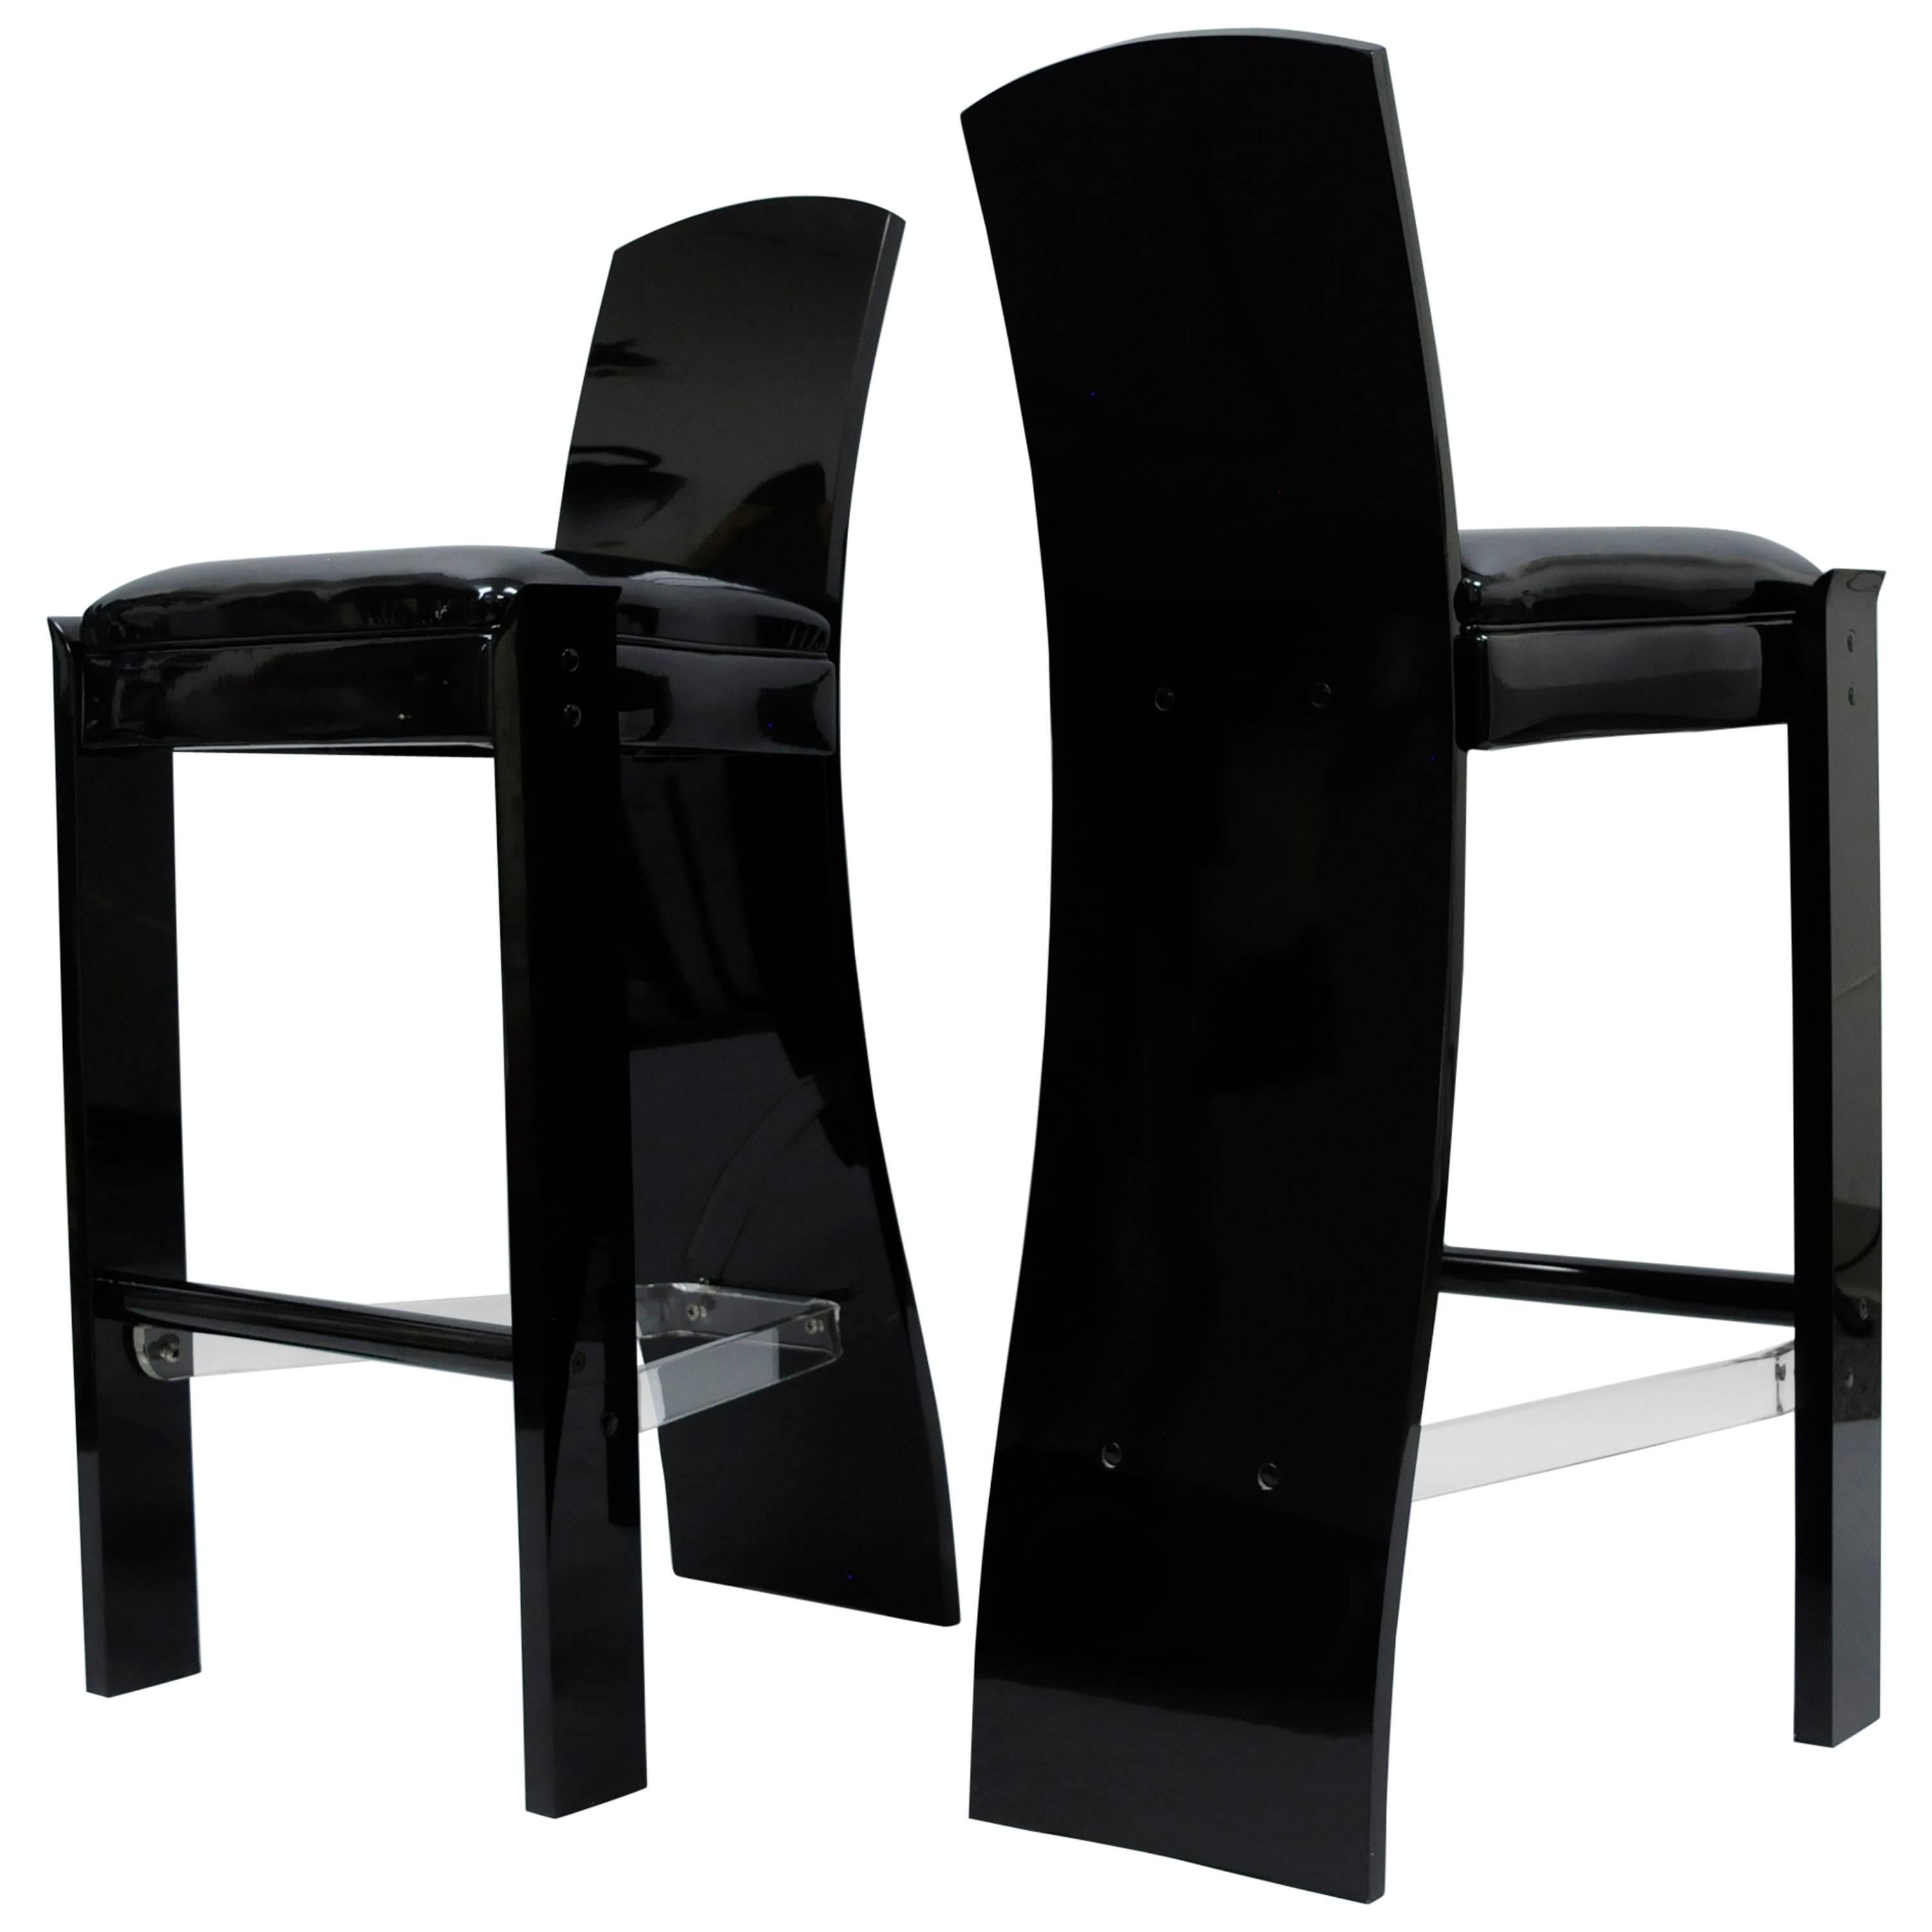 Pair of Black Lucite Hill Mfg. Mid Century Modern Curved Sculptural Bar Stools